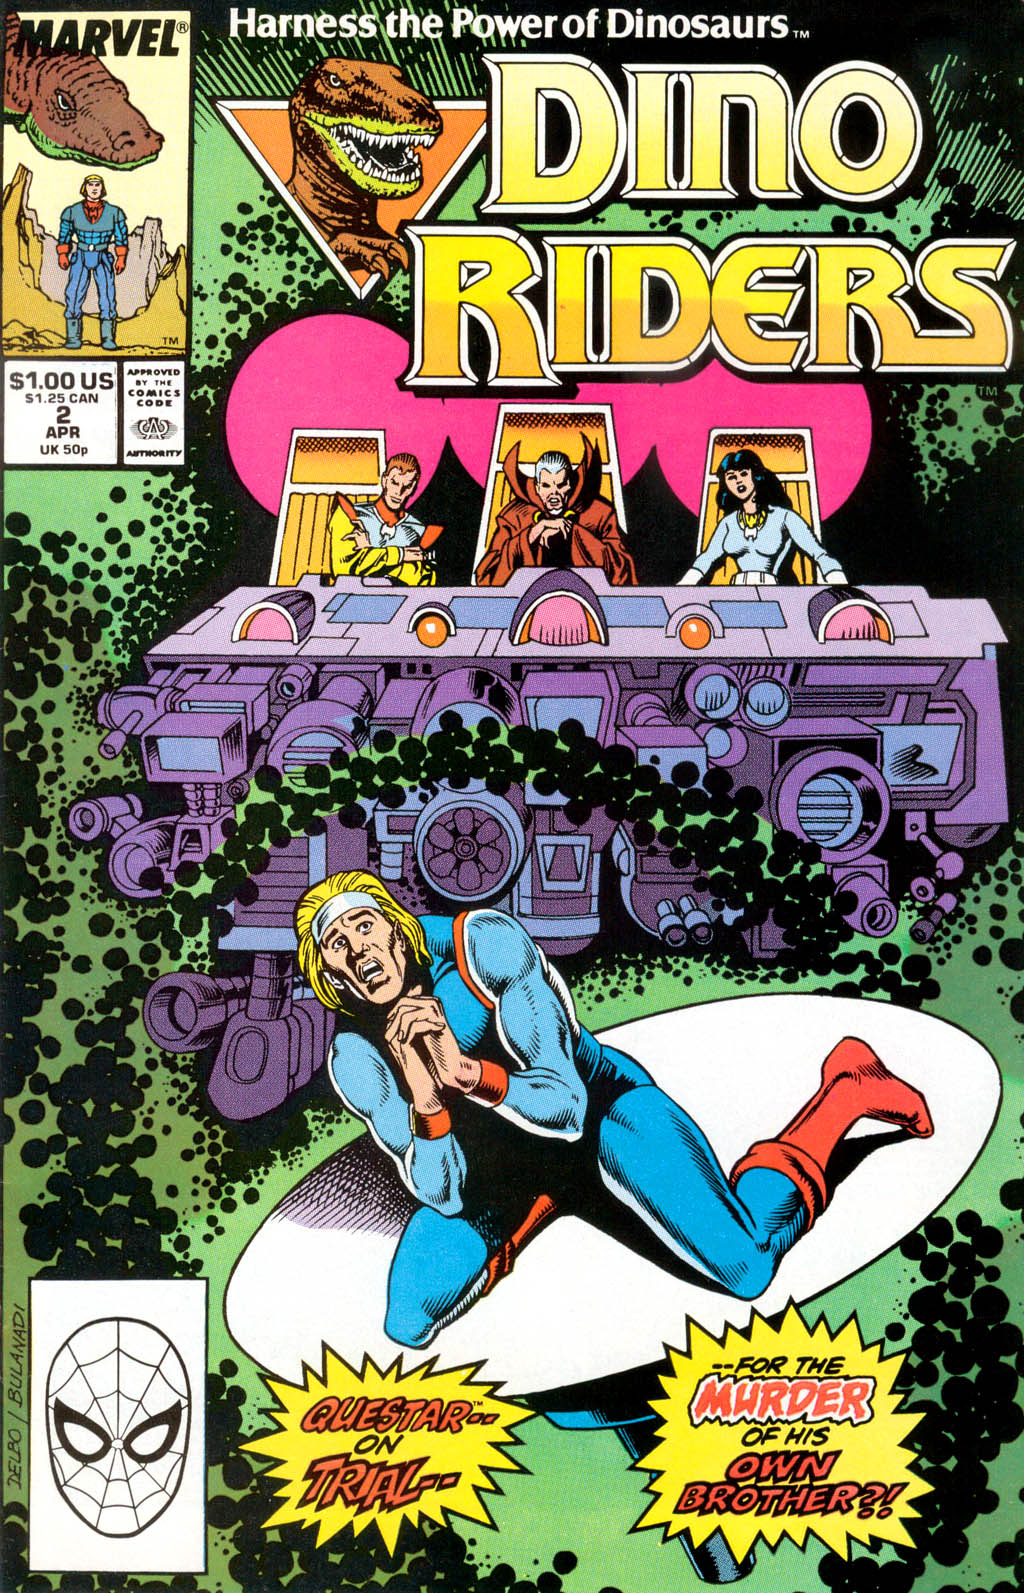 Dino Riders (1989) #2, cover penciled by Jose Delbo & inked by Danny Bulanadi.